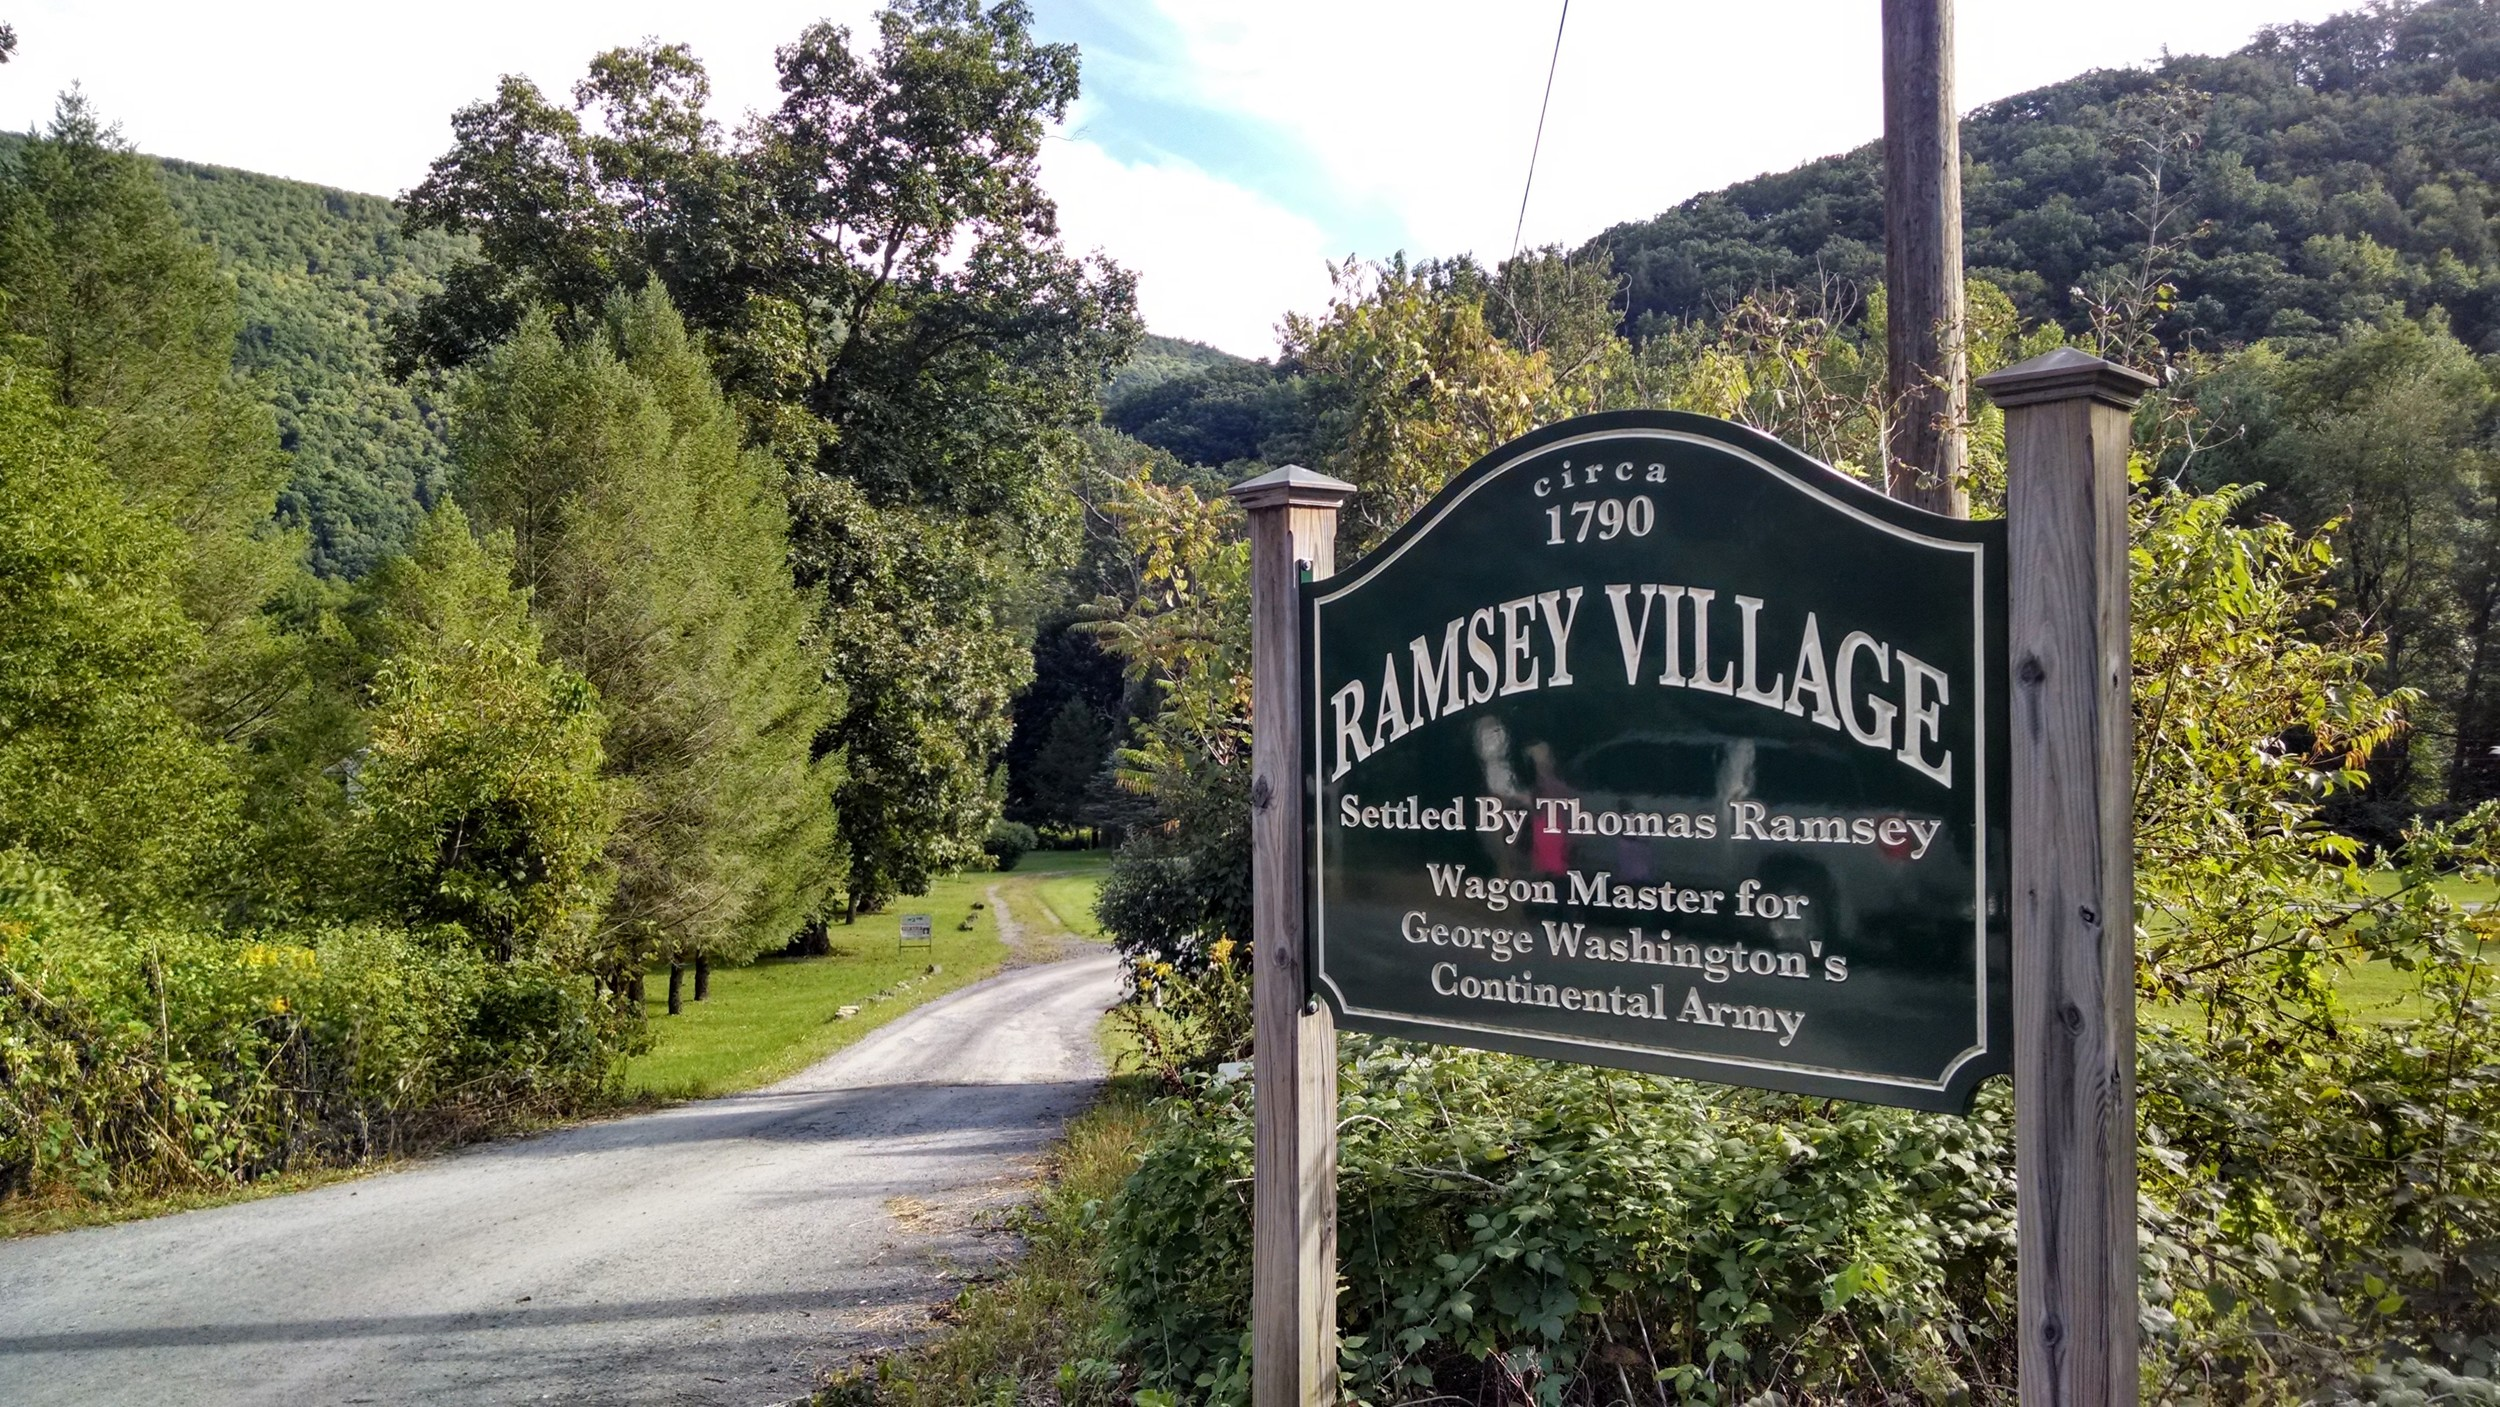 The entrance to  Ramsey Village.